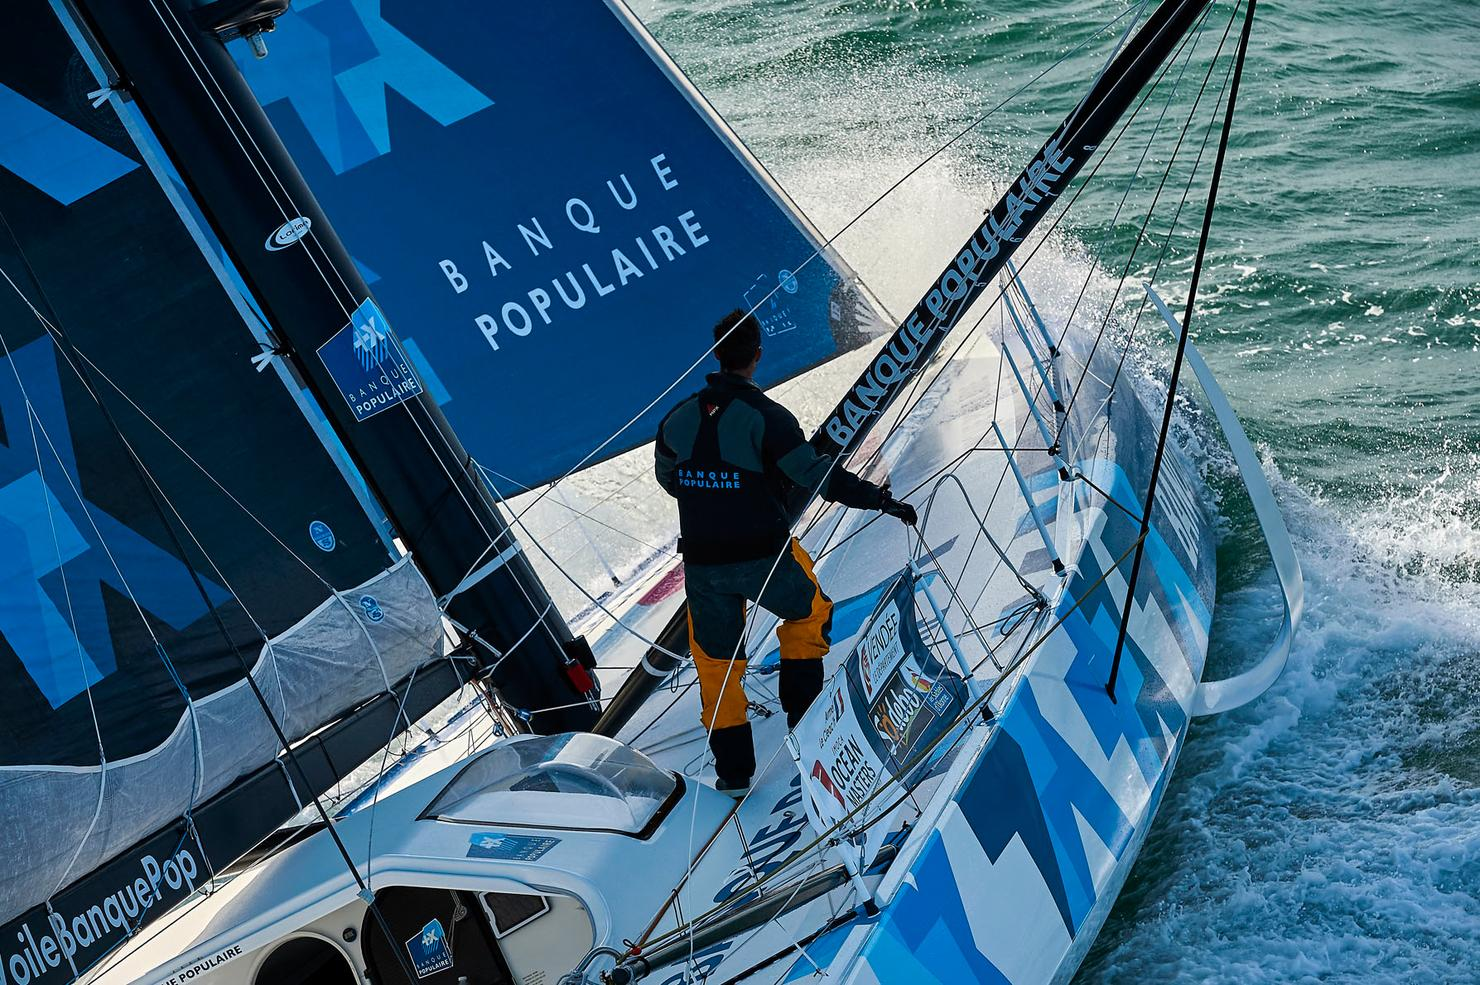 https://media02.adonnante.com/media/2016/04/course-au-large-imoca-banque-populaire-armel-le-cleach-yvan-zedda-723.jpg